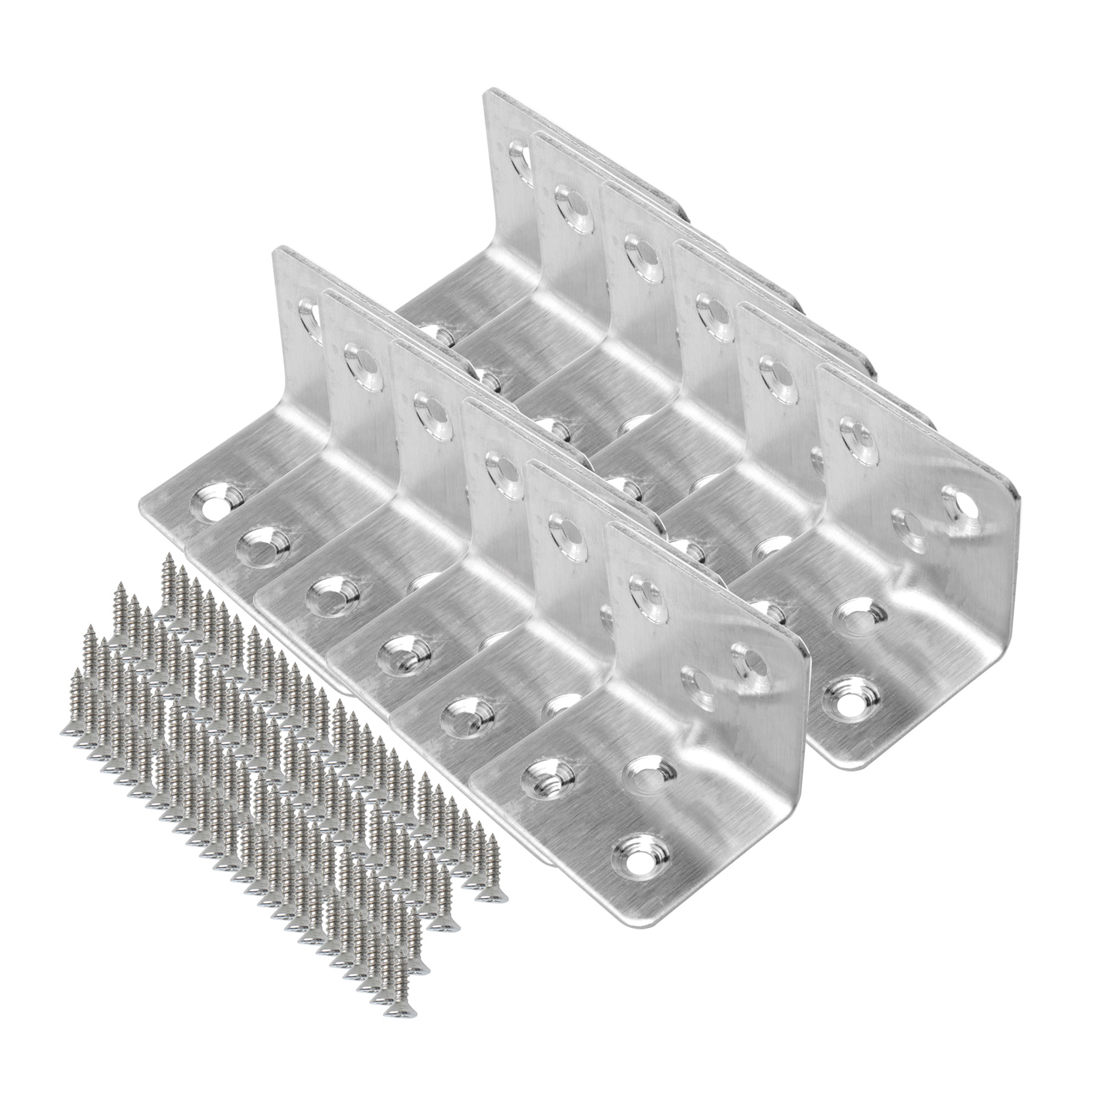 Angle Bracket Stainless Steel Brace Shelf Support w Screws 30 x 30 x 38mm, 12pcs